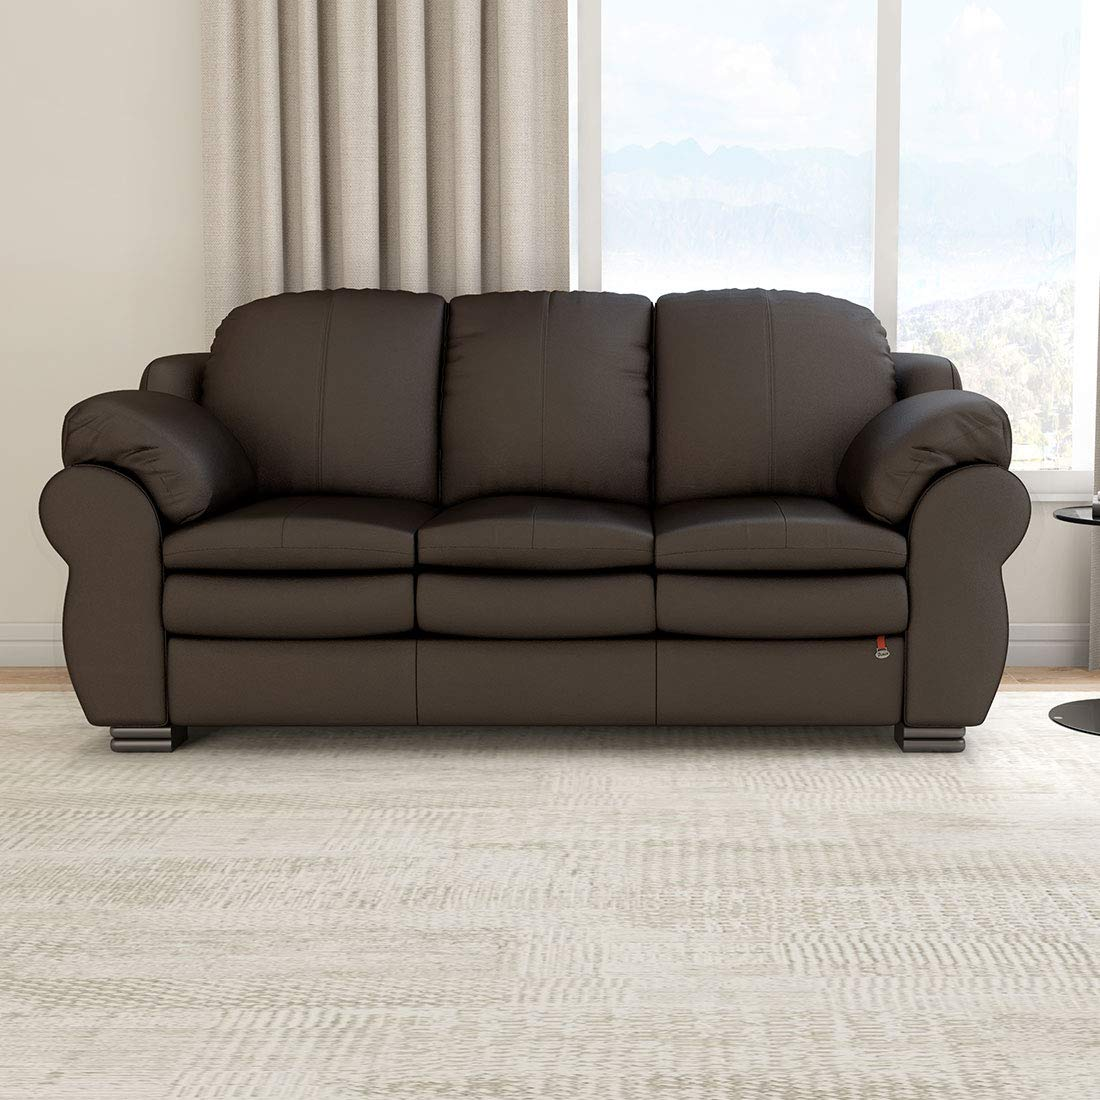 Durian Berry Leatherette Three Seater Sofa (Brown)